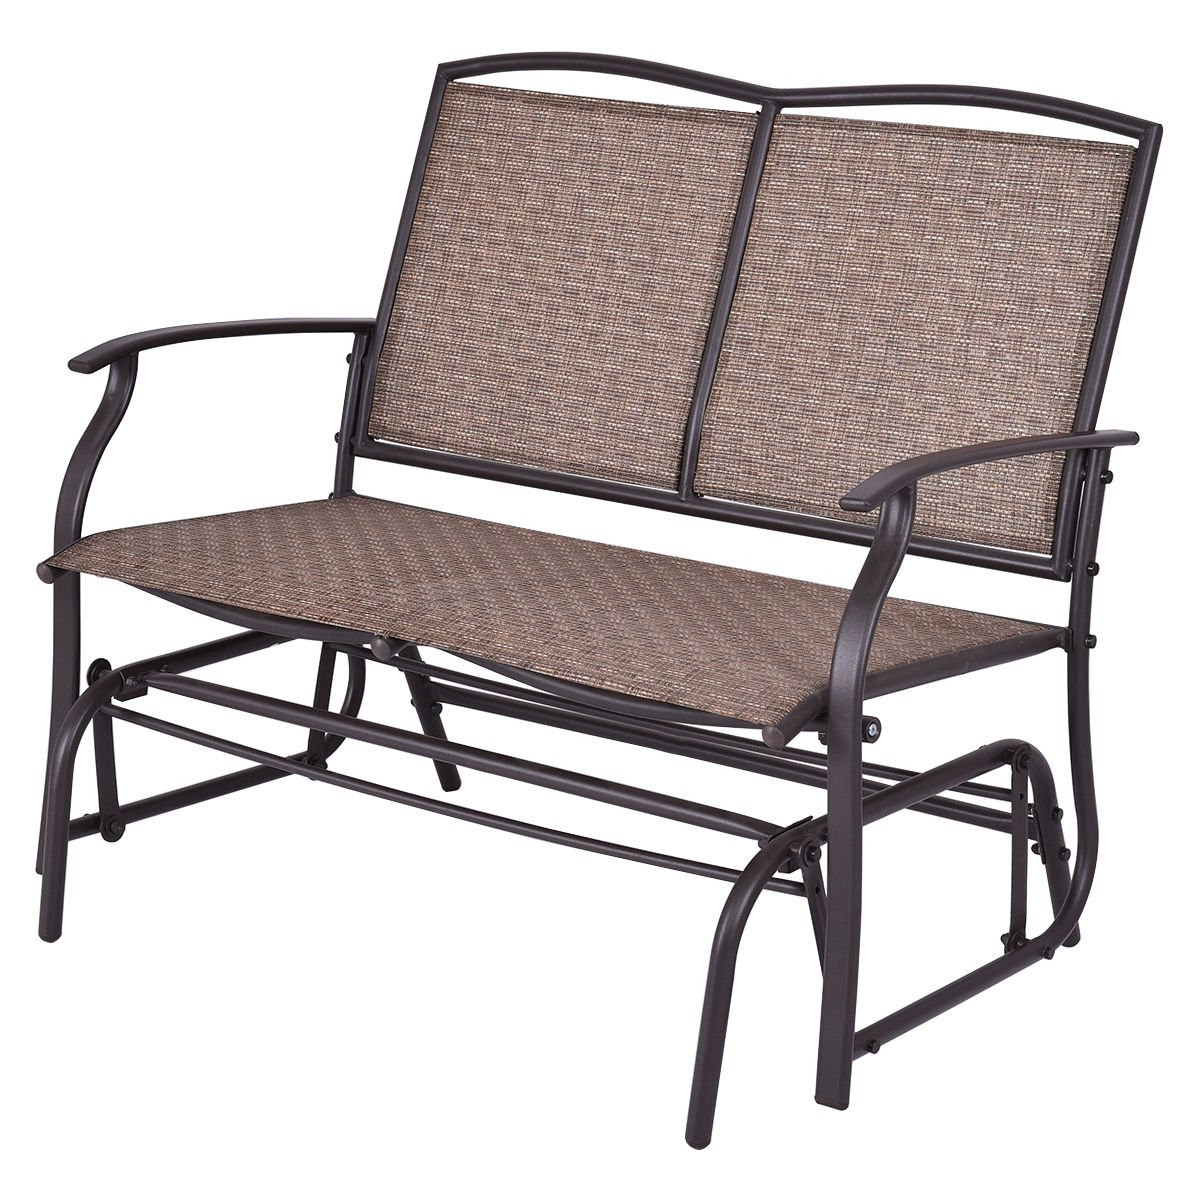 Double Glider Benches With Cushion Pertaining To Latest Amazon: Maximumstore – Patio Glider Rocking Bench Double (View 17 of 30)